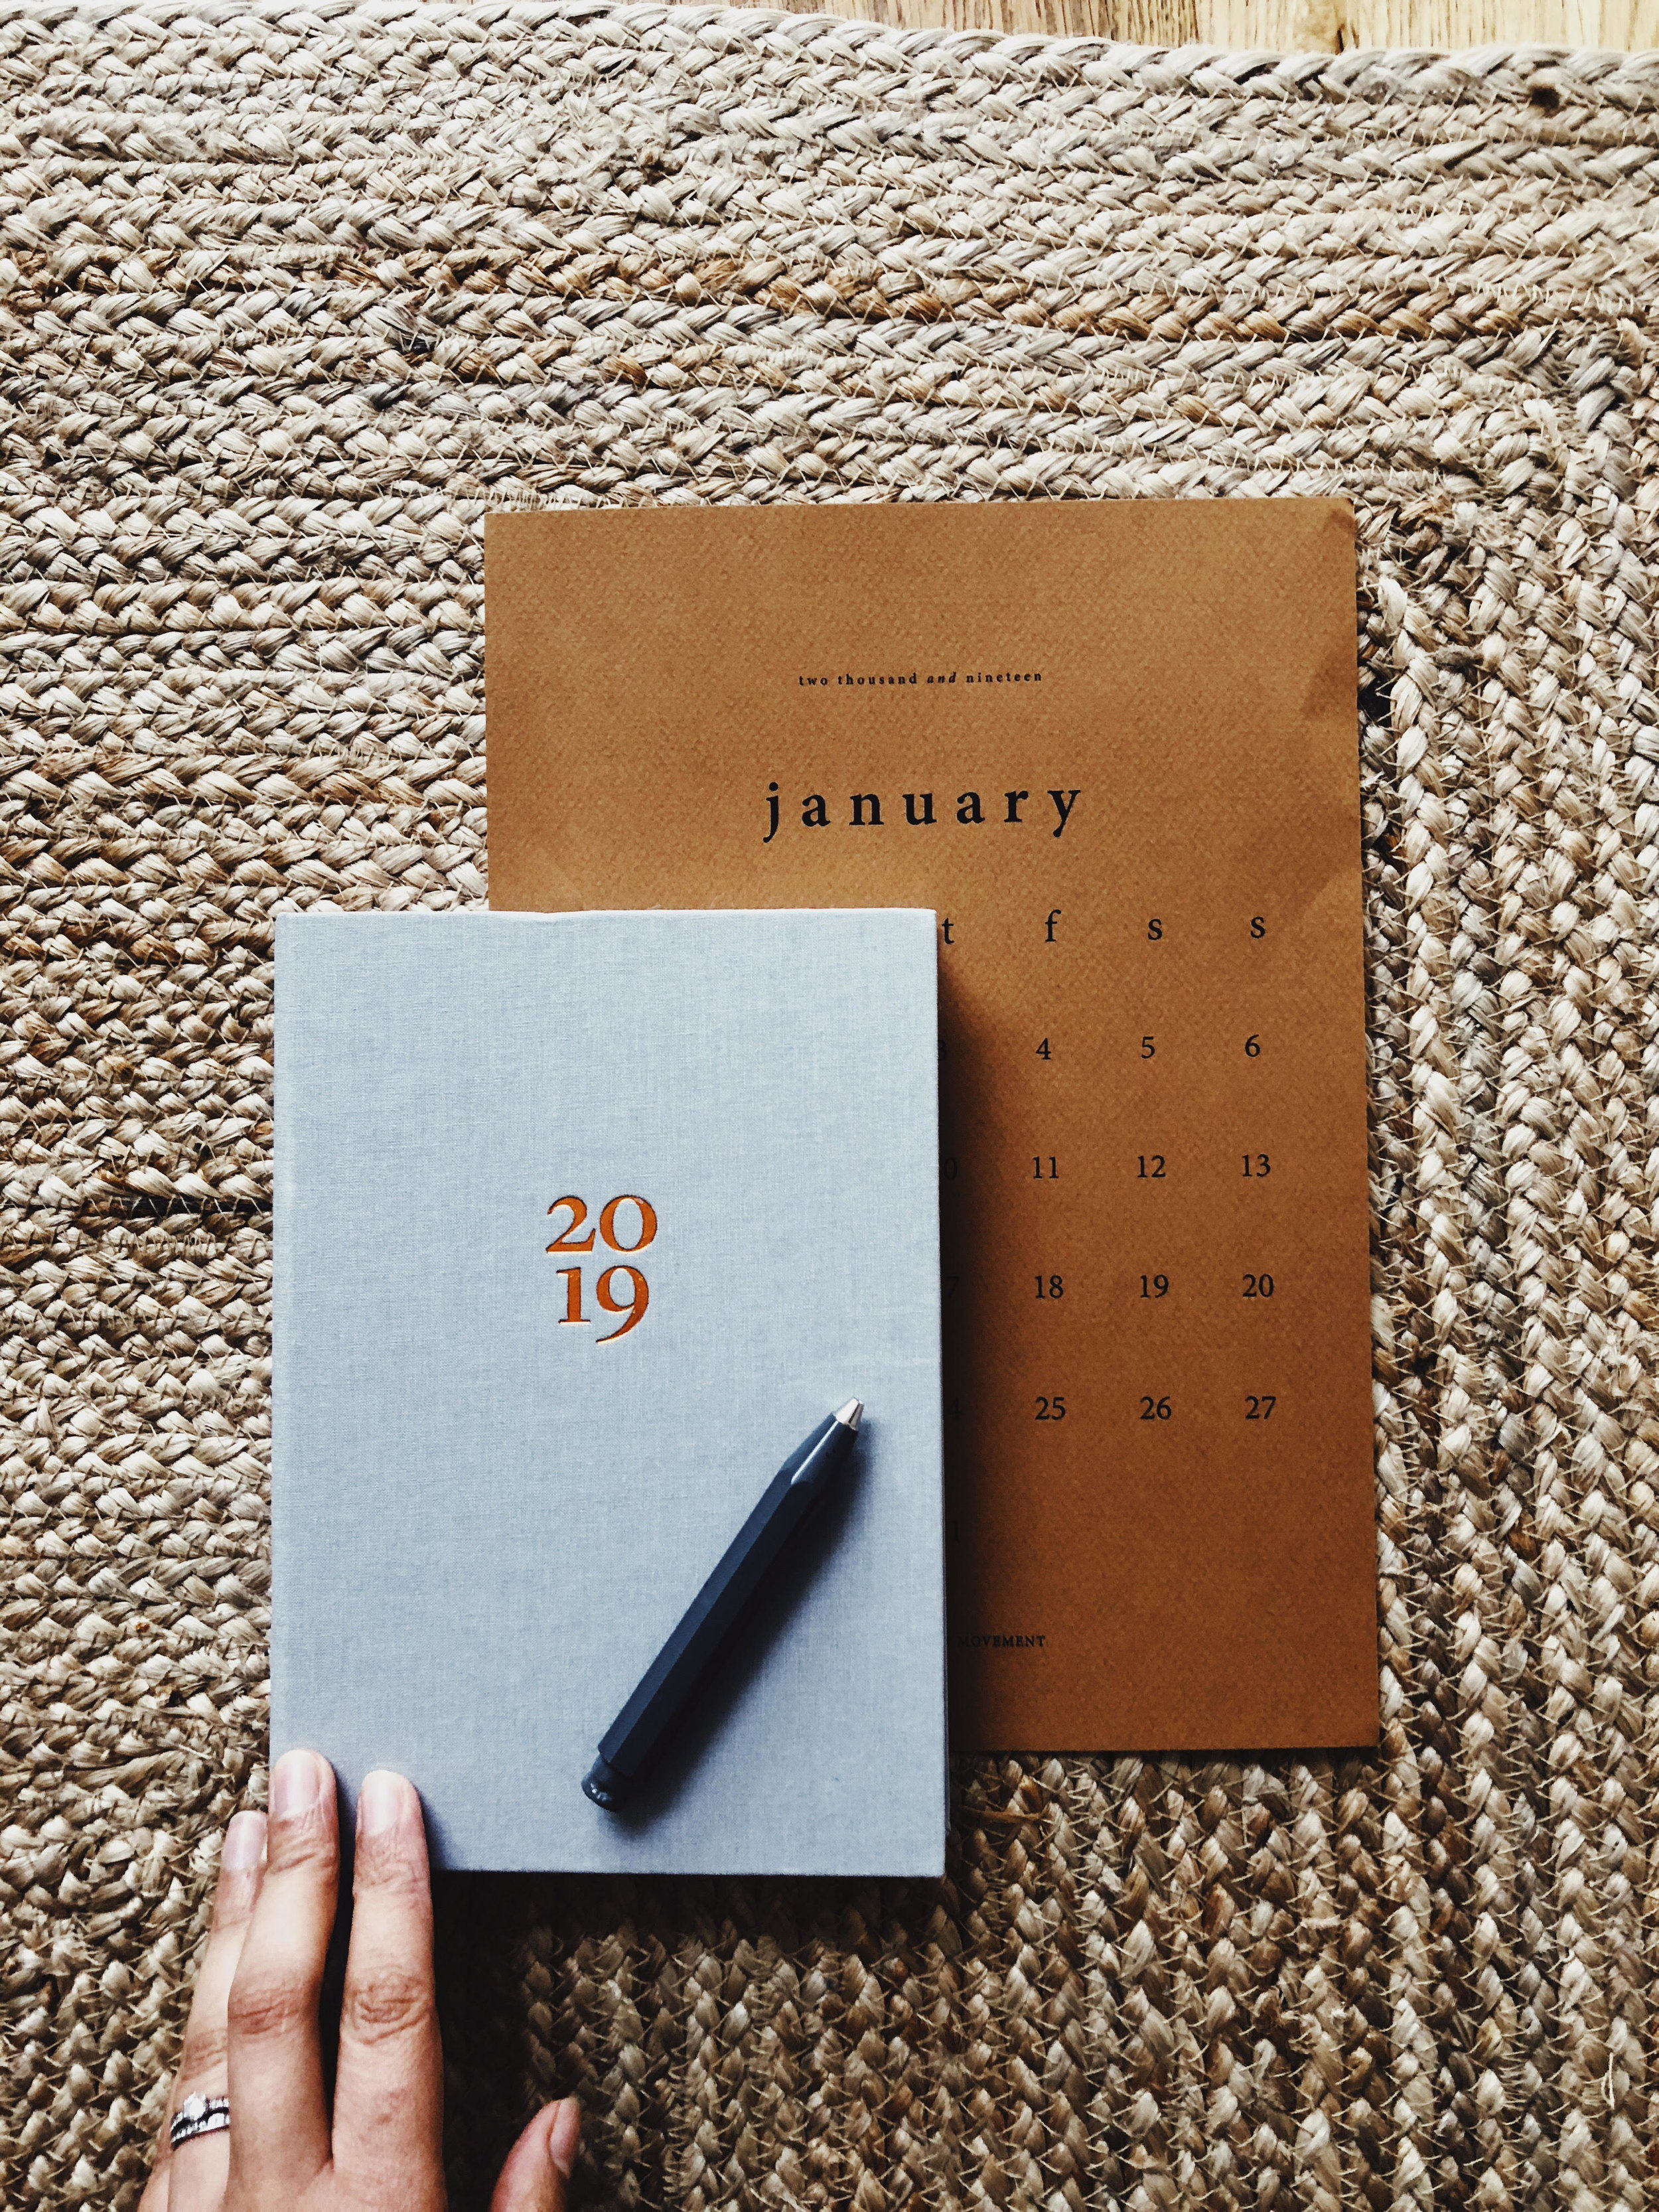 Why starting the new year and planning ahead brings me joy; read my simple living series on finding joy in the simple things in life